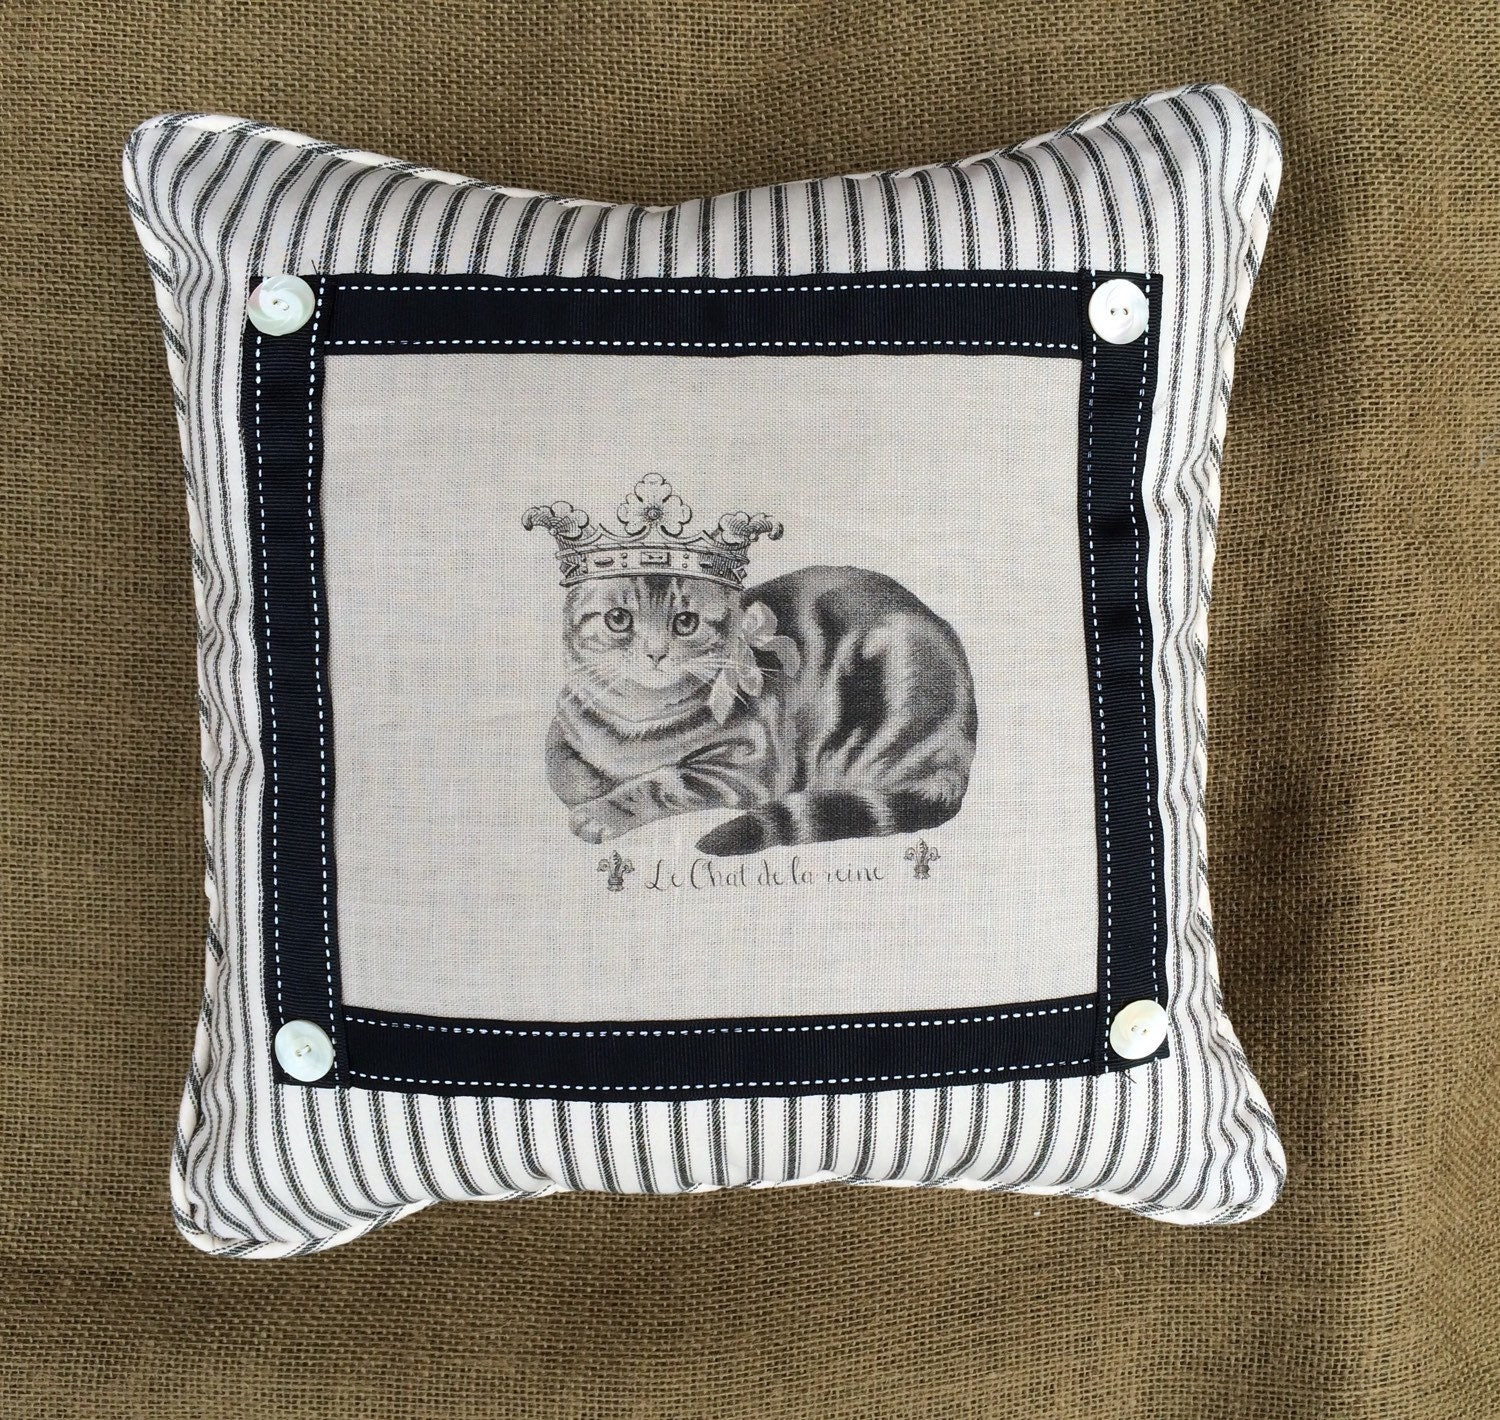 Throw Pillow In French : French Cat in Crown Printed on Linen Decorative Throw Pillow